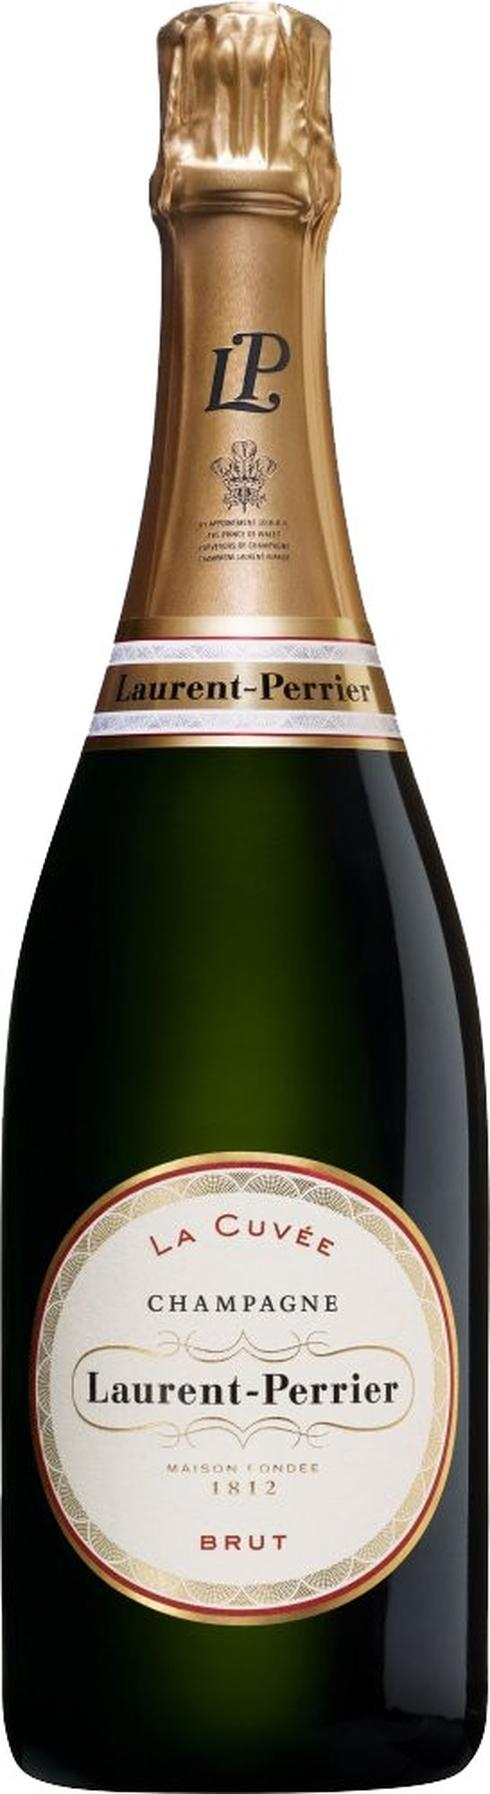 laurent perrier La CuveeBrut